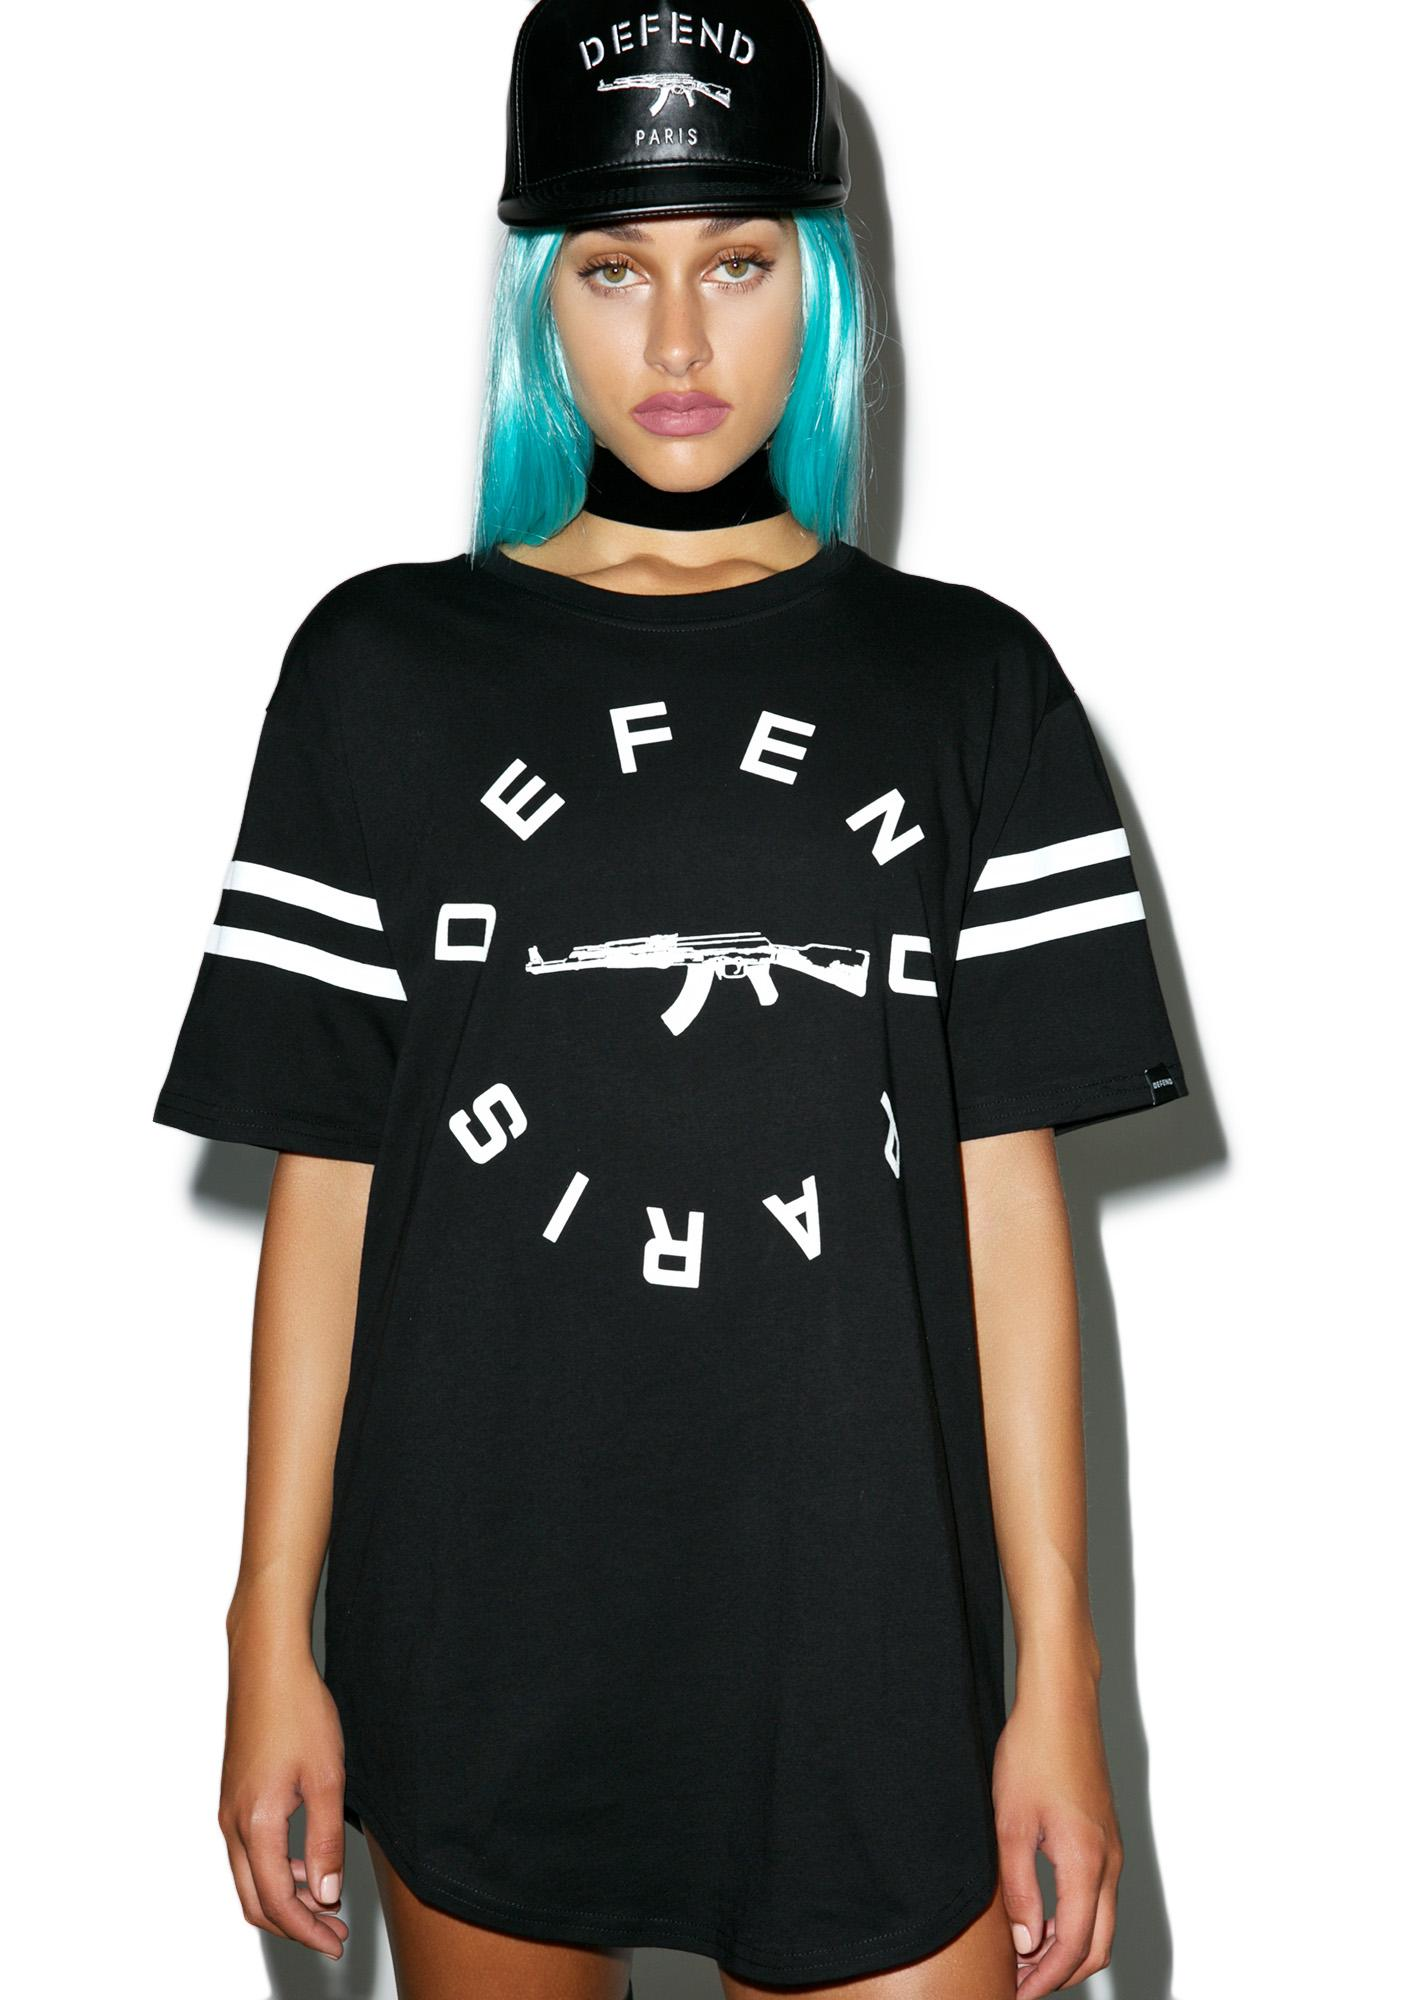 Defend Paris Stripe Tee